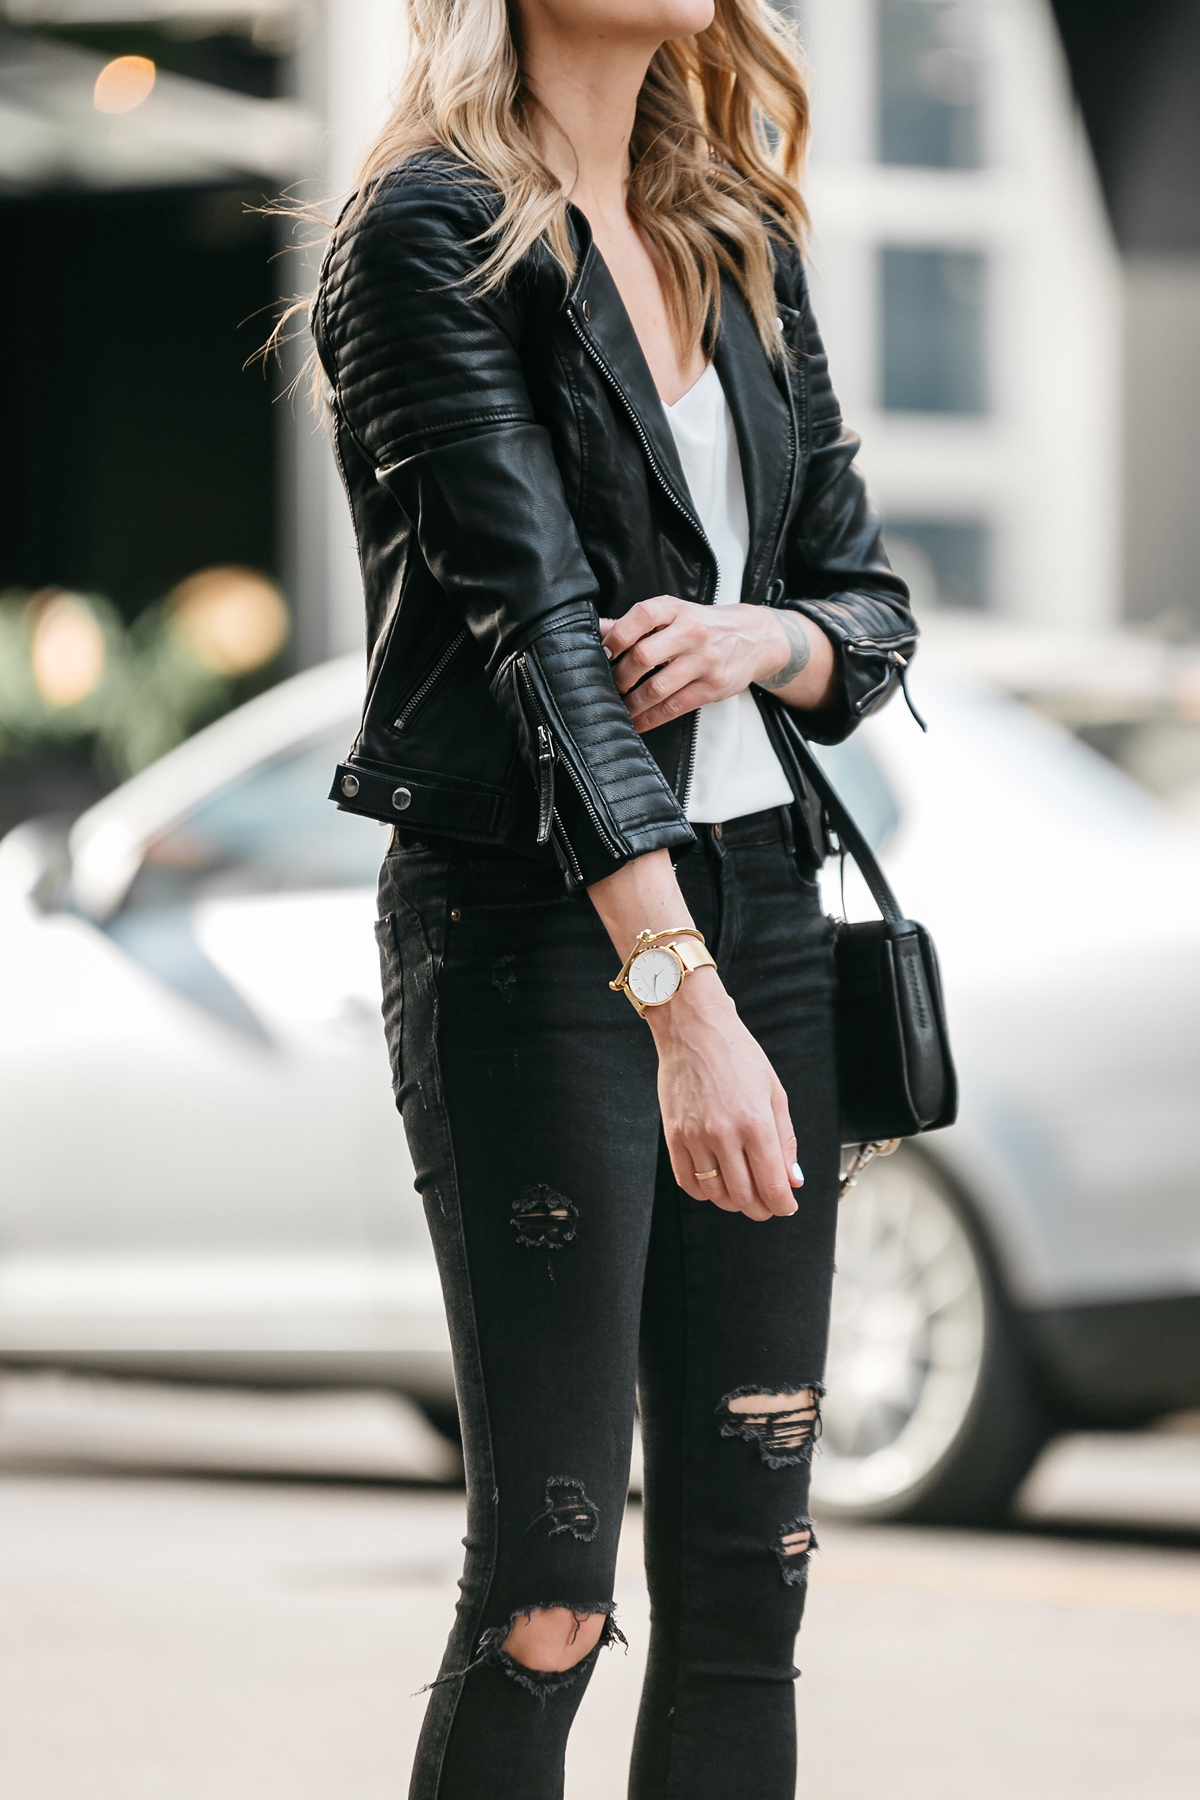 Fashion Jackson, Dallas Blogger, Fashion Blogger, Street Style, Topshop Black Moto Jacket, White Cami, Zara Black Ripped Skinny Jeans, Marc Fisher Zala Black Pumps, Chloe Faye Black Handbag, Celine Aviator Sunglasses